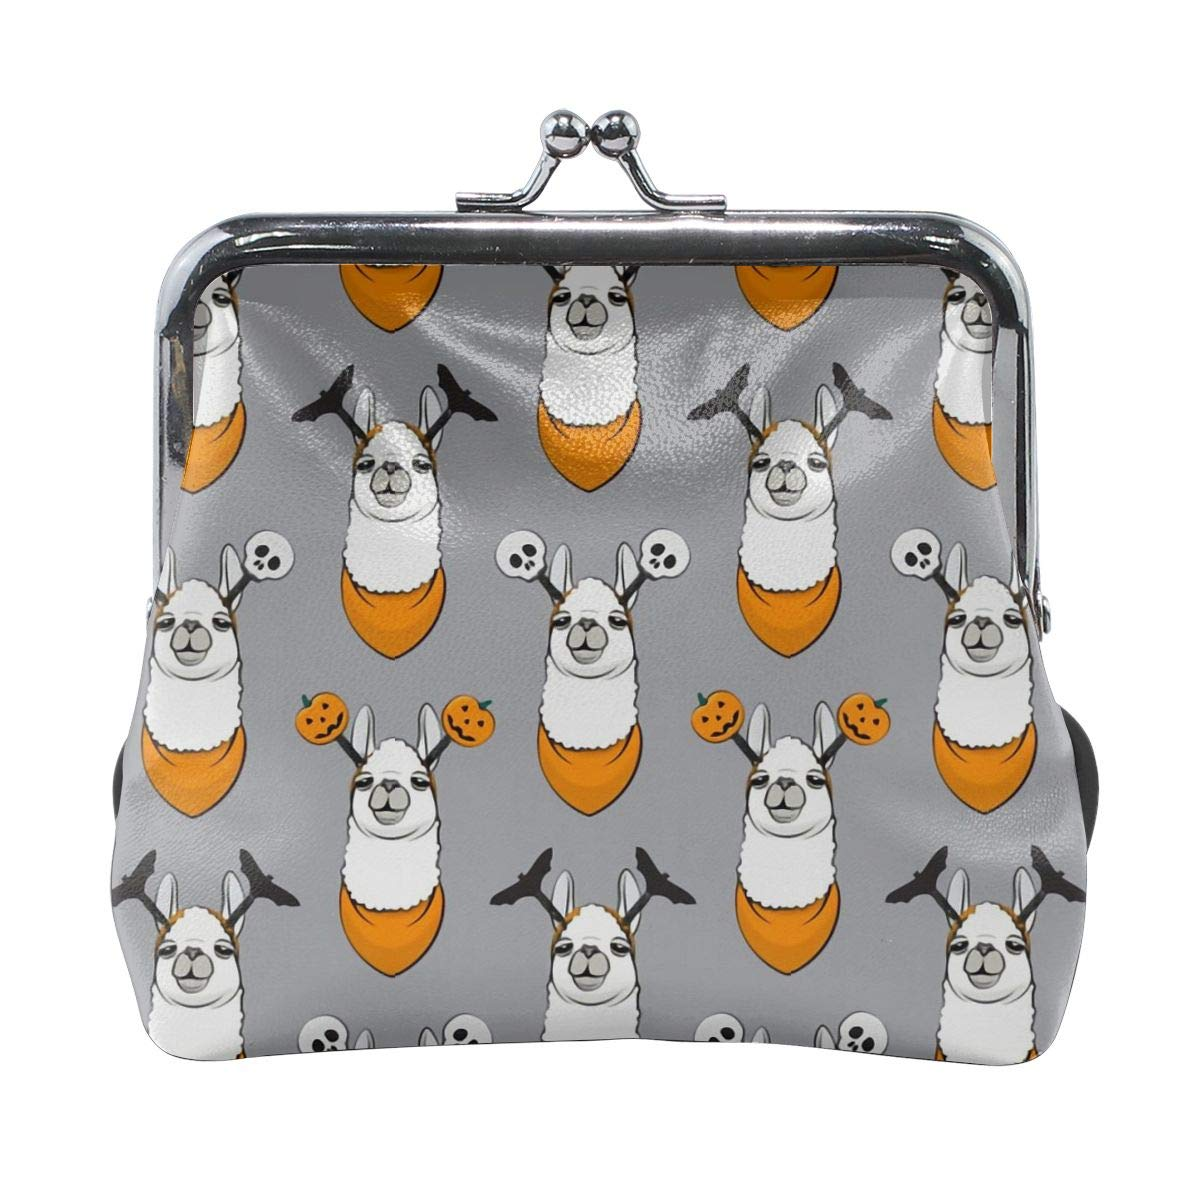 Grey Easter Head Llama Vintage Pouch Girl Kiss-lock Change Purse Wallets Buckle Leather Coin Purses Key Woman Printed